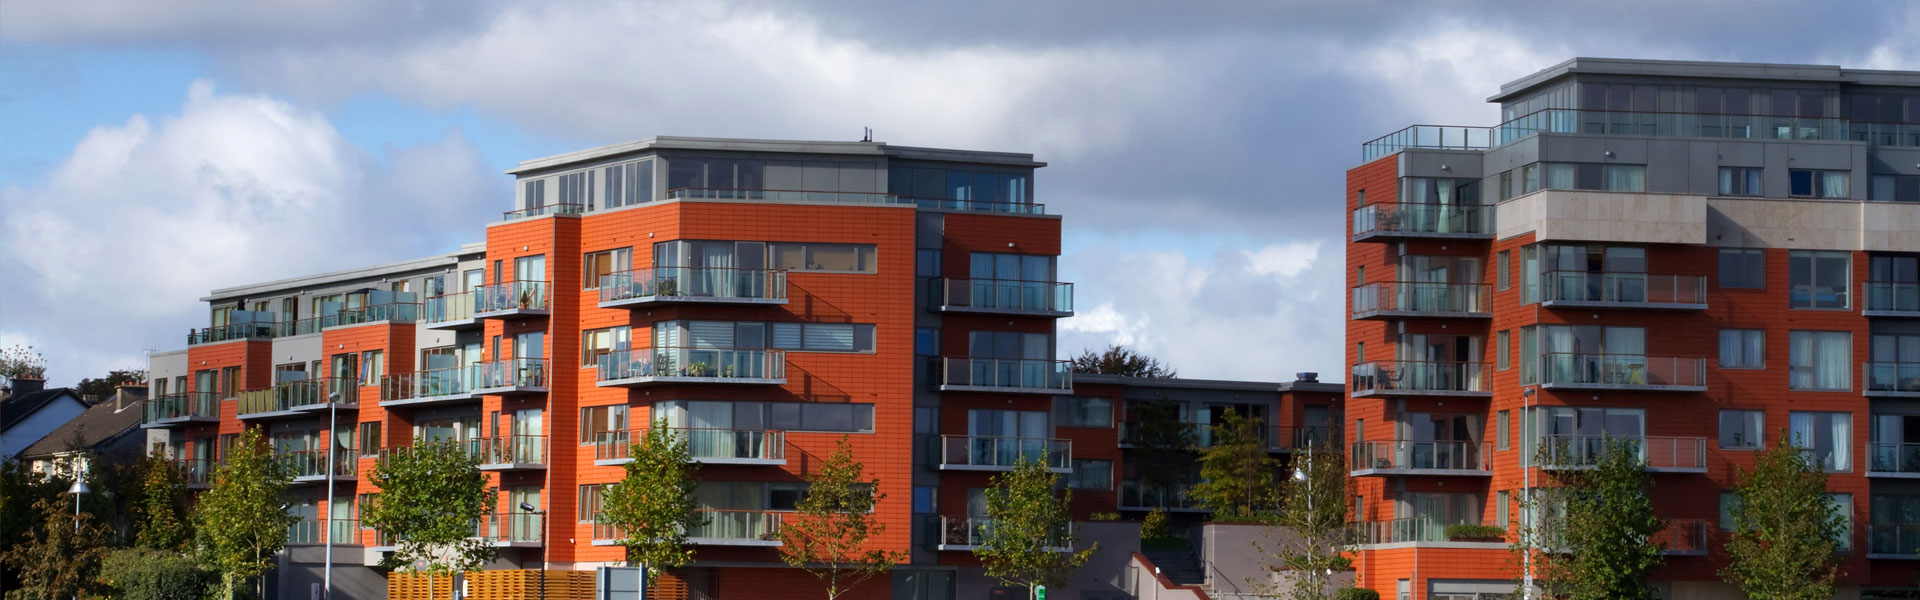 professional Commercial property management in Curraghroe